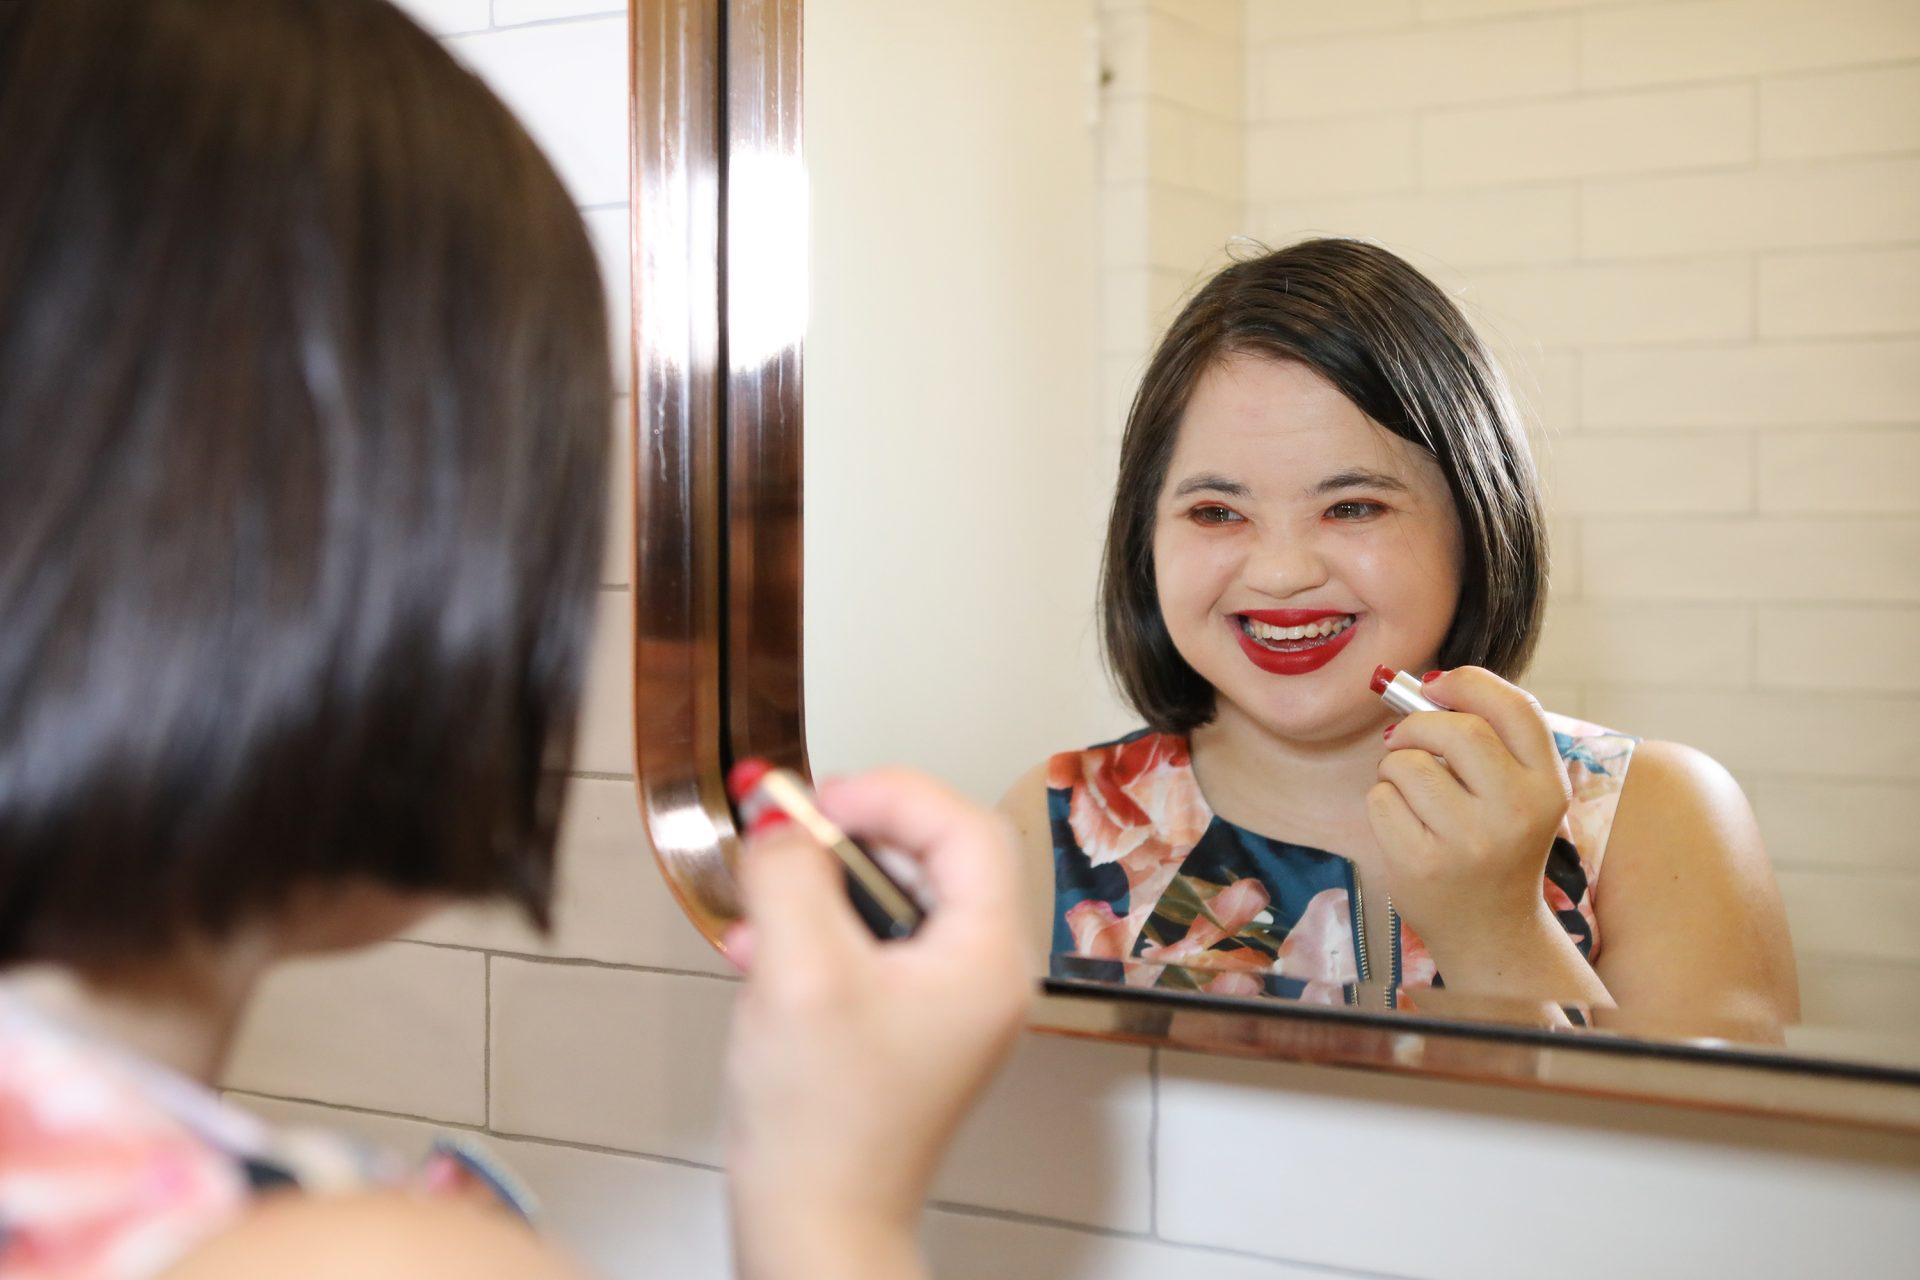 A young woman with brown hair looks into a mirror and puts on red lipstick